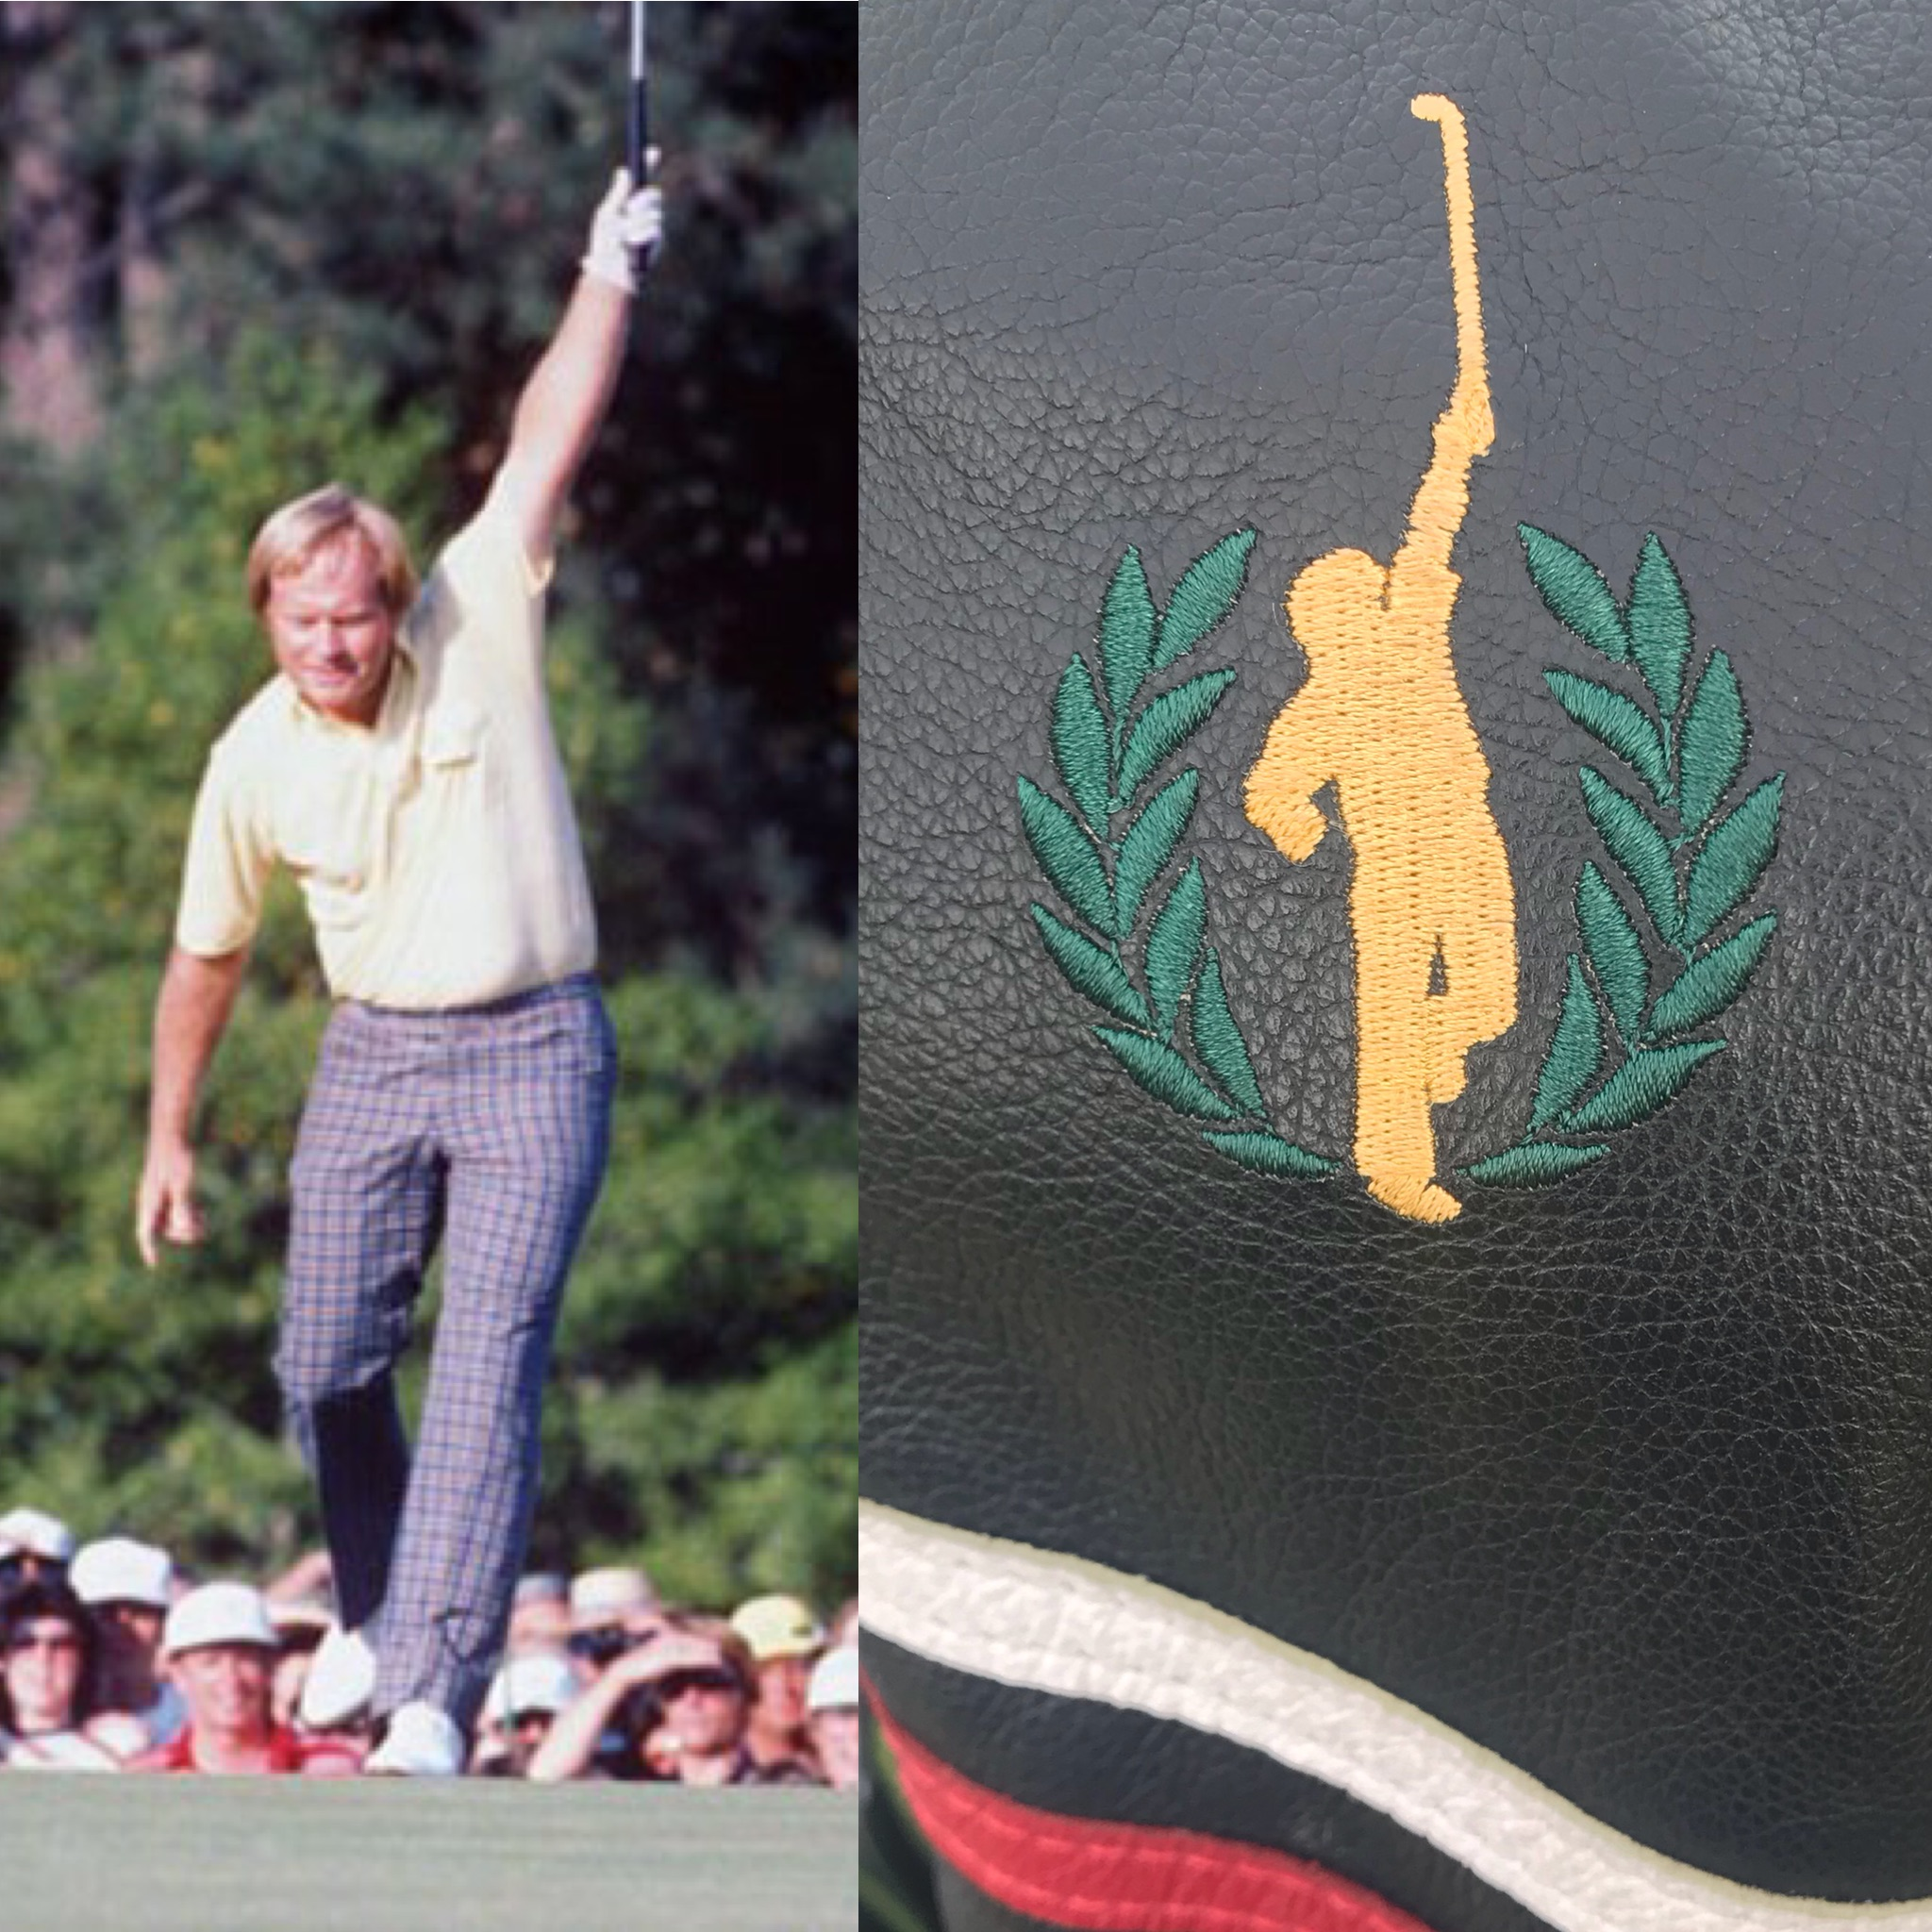 Jack's head covers are cooler than yours.